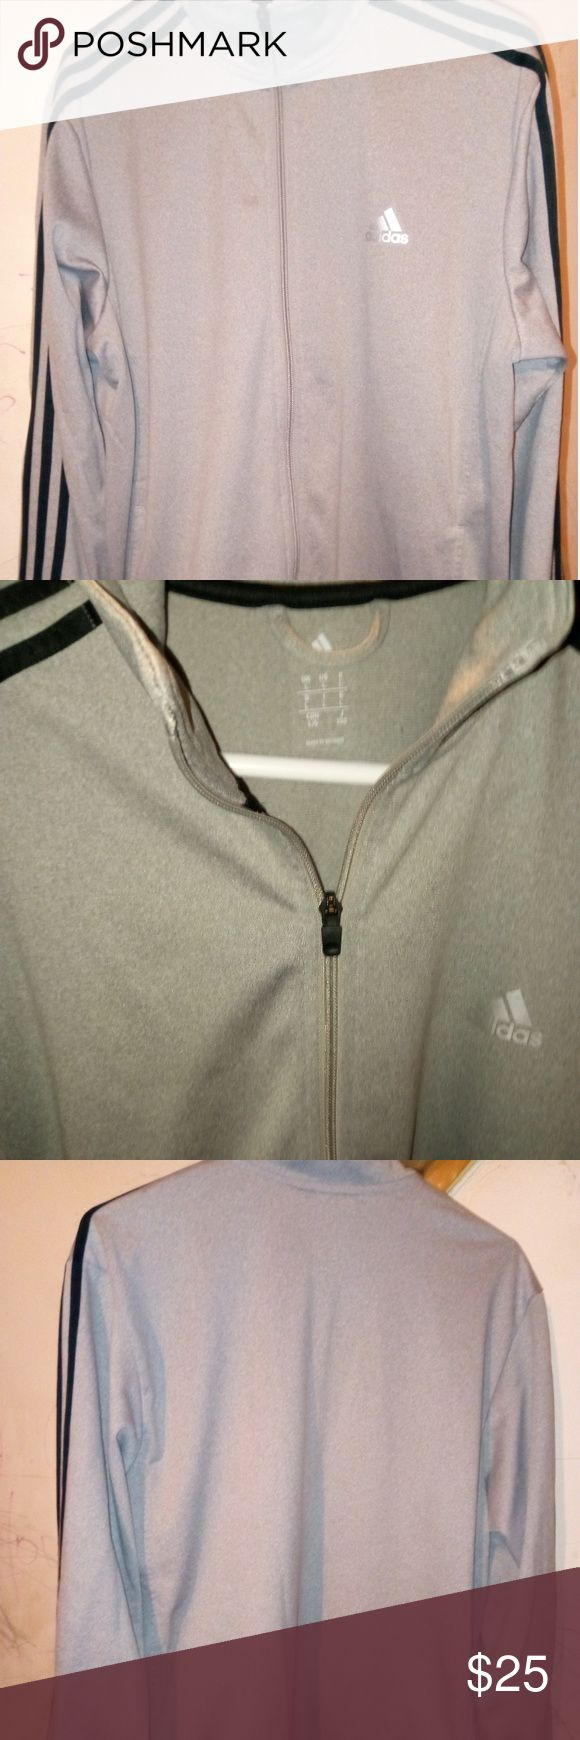 CLEAN! Adidas track jacket men's large Adidas track jacket men's large classic 3 stripe light gray with black stripes. Full front zip-up works perfect. This jacket looks new washed only twice, no stains, holes or tears adidas Jackets & Coats Performance Jackets